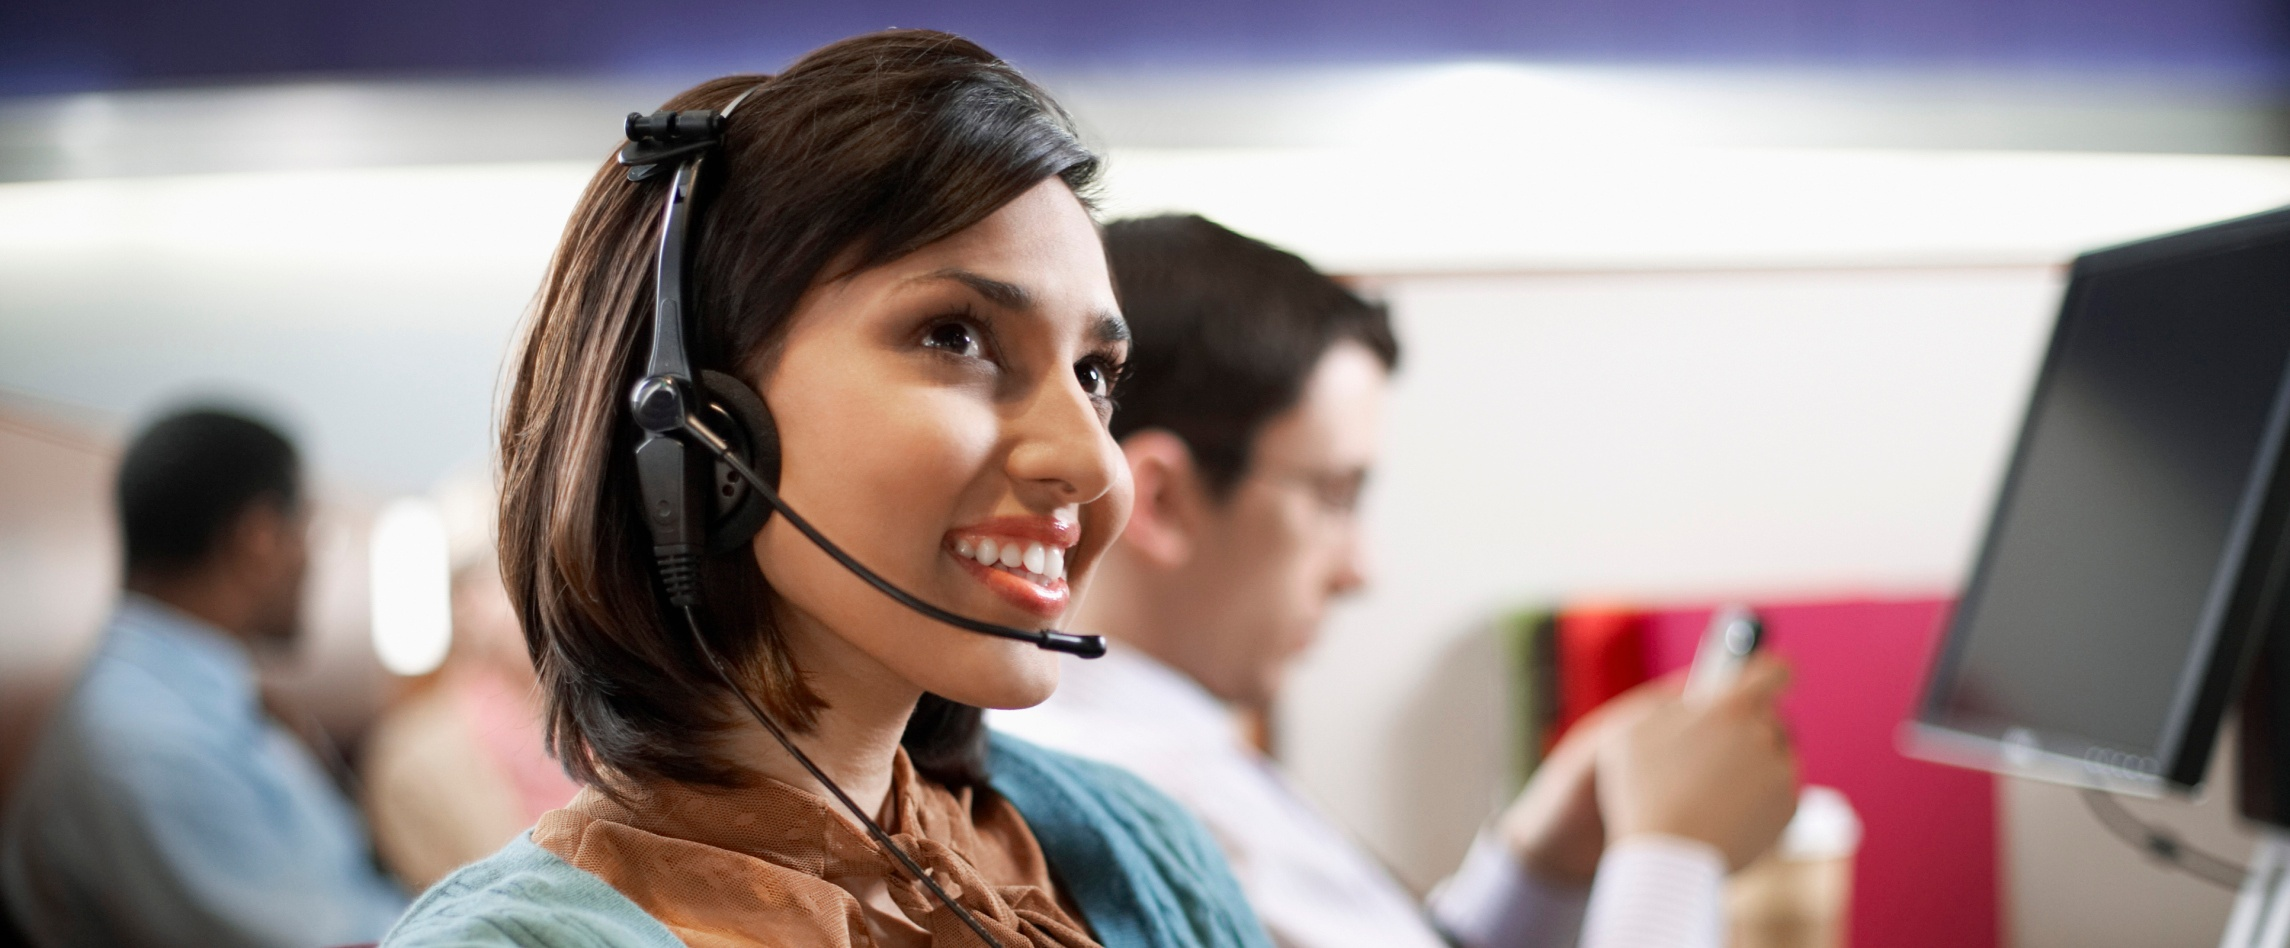 20 Critical Customer Service Skills All Sales Reps Should Master [Infographic]